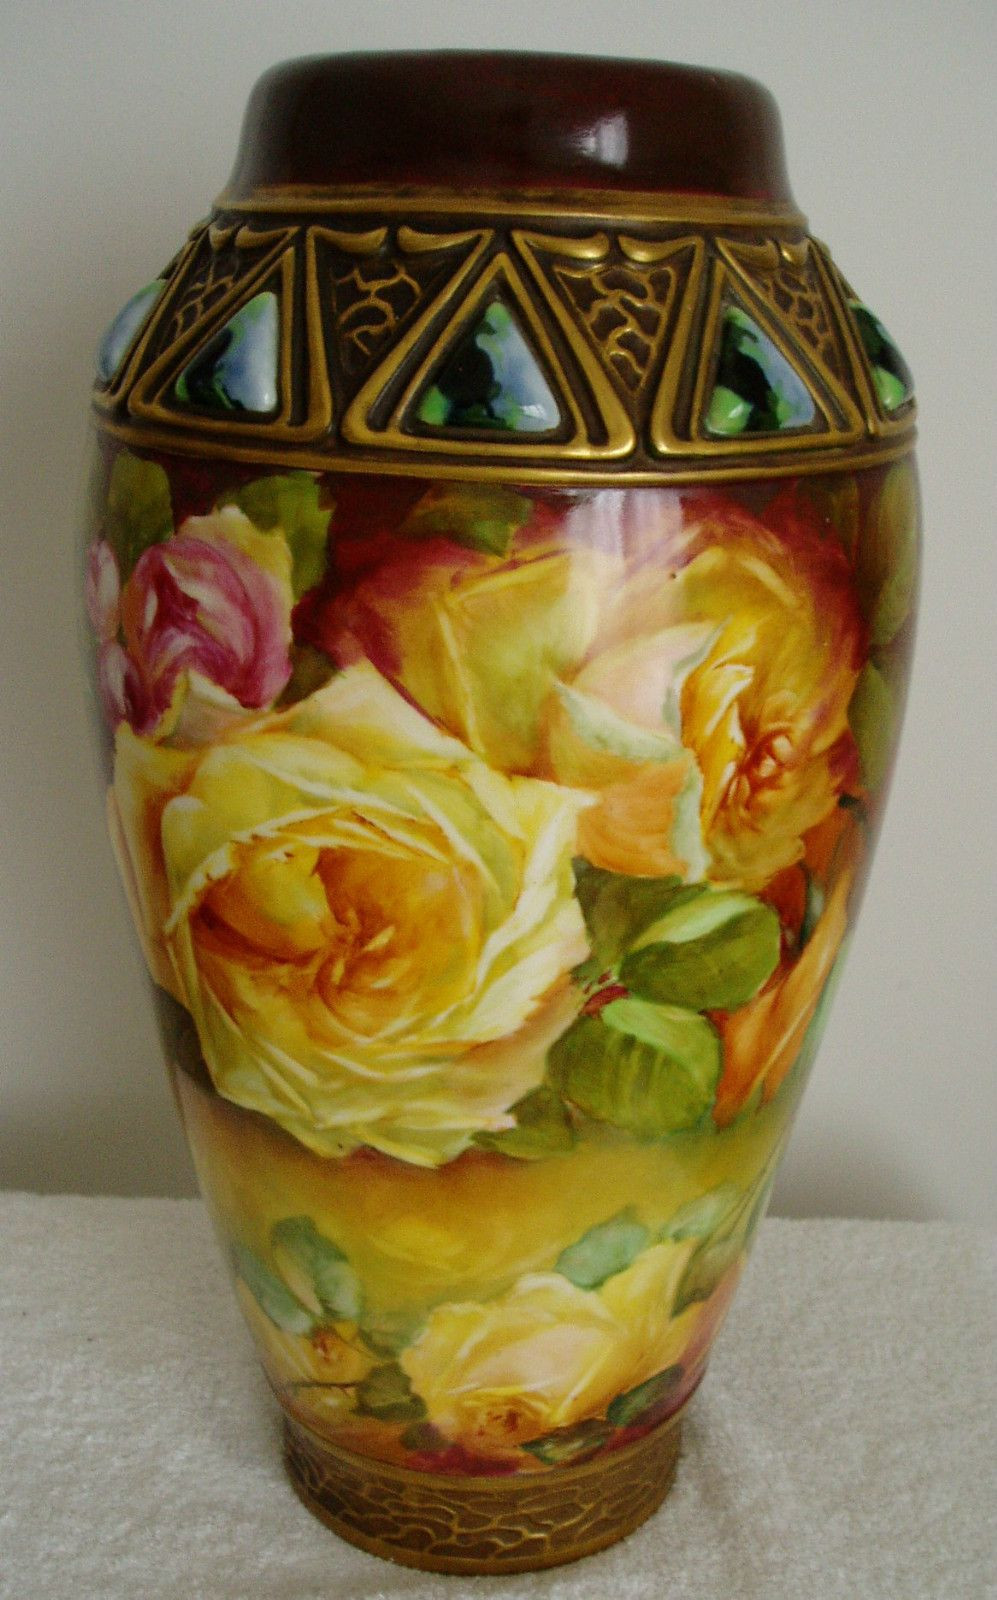 antique chinese vases of habsburg austria vintage large art pottery vase hand painted roses intended for habsburg austria vintage large art pottery vase hand painted roses ebay